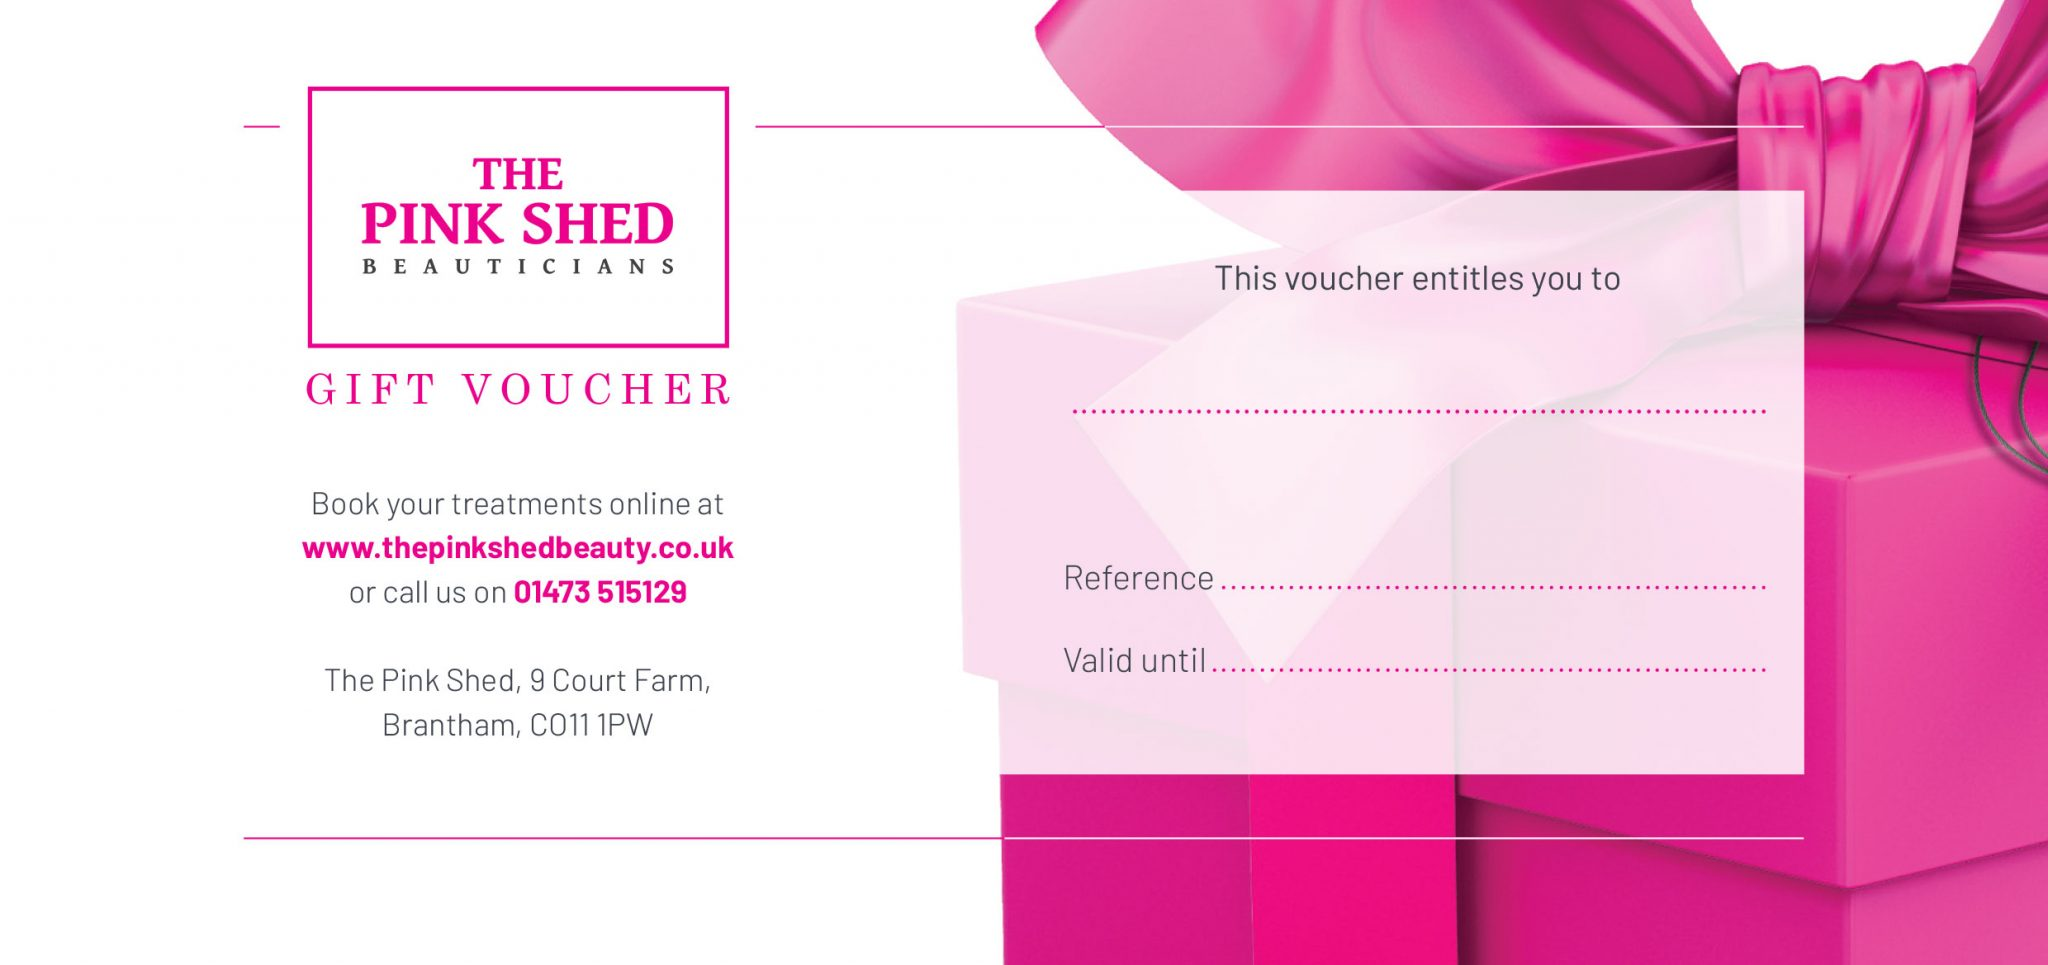 Pink-Shed-Gift-Voucher-AW-HR-2